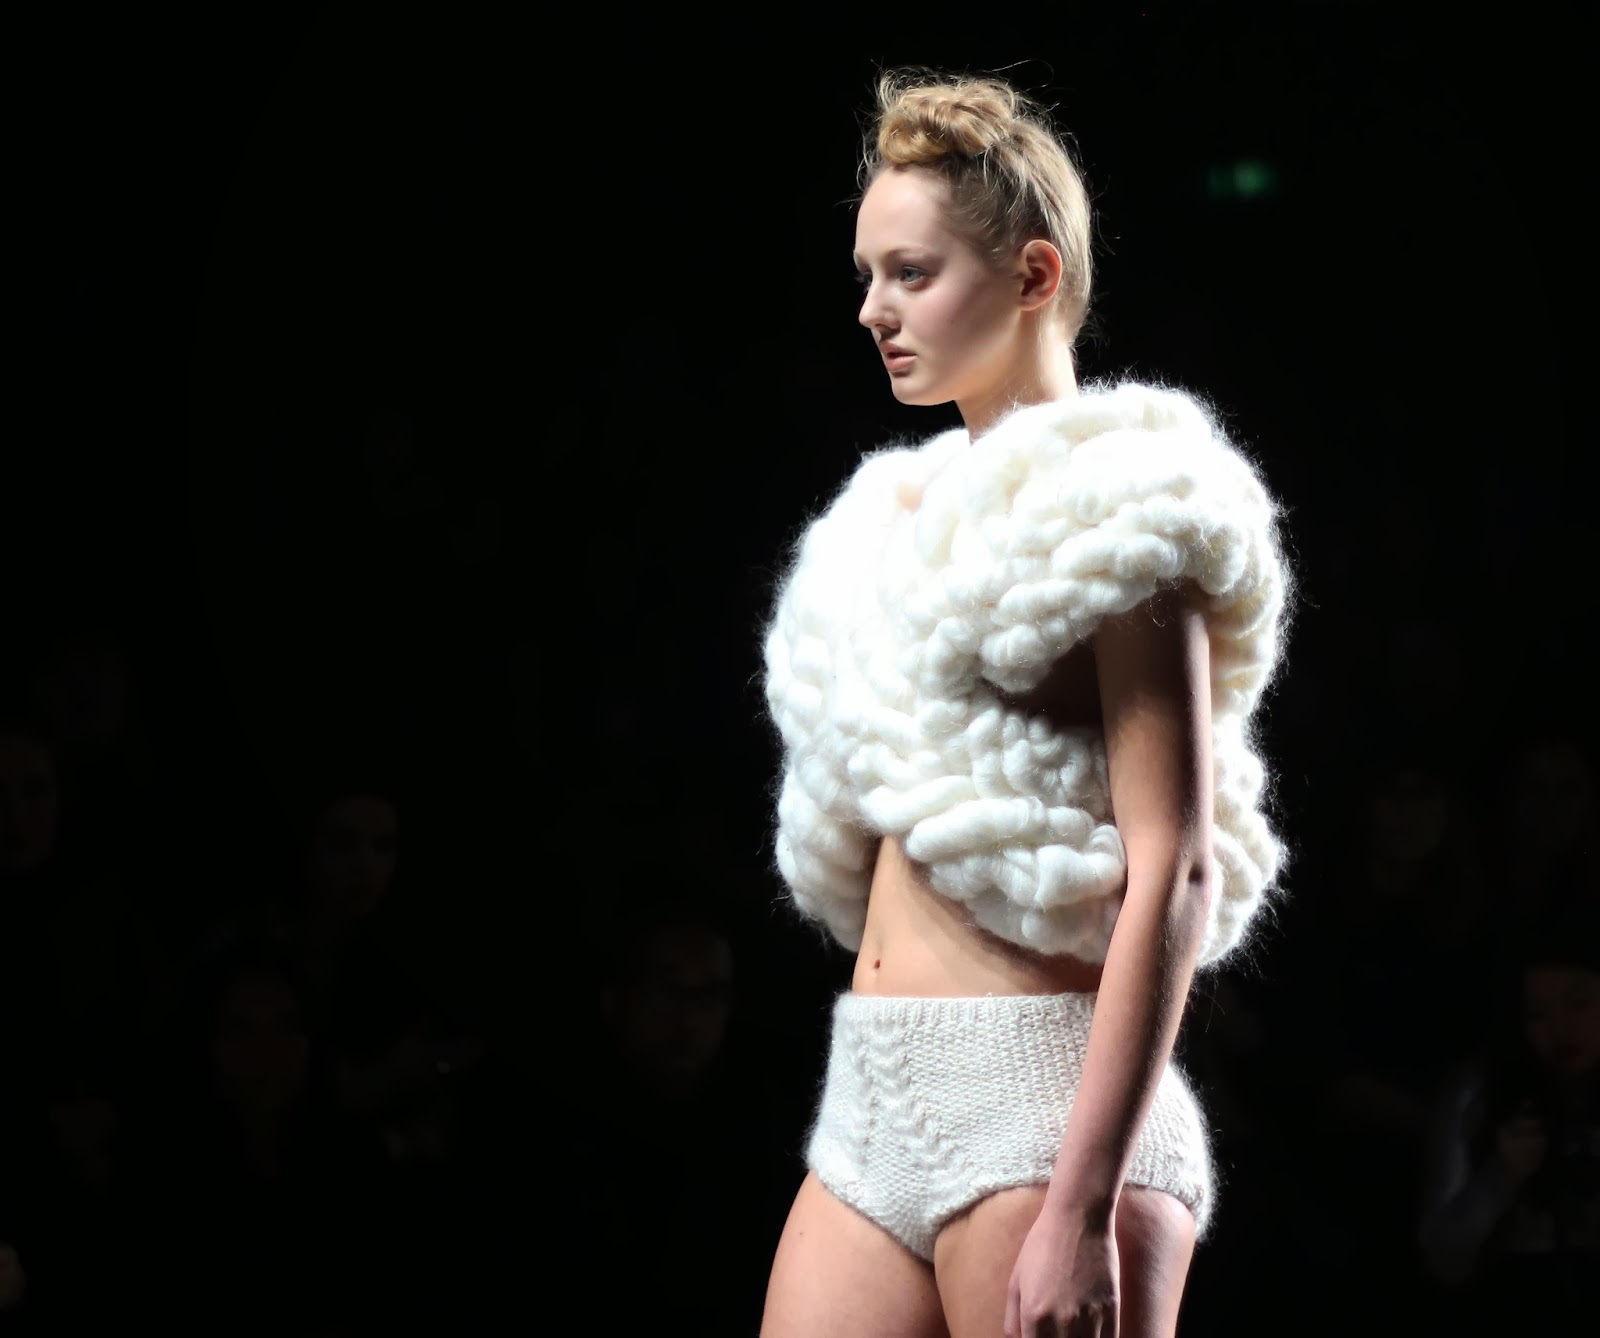 Winde Rienstra mercedez benz fashion week amsterdam 2014